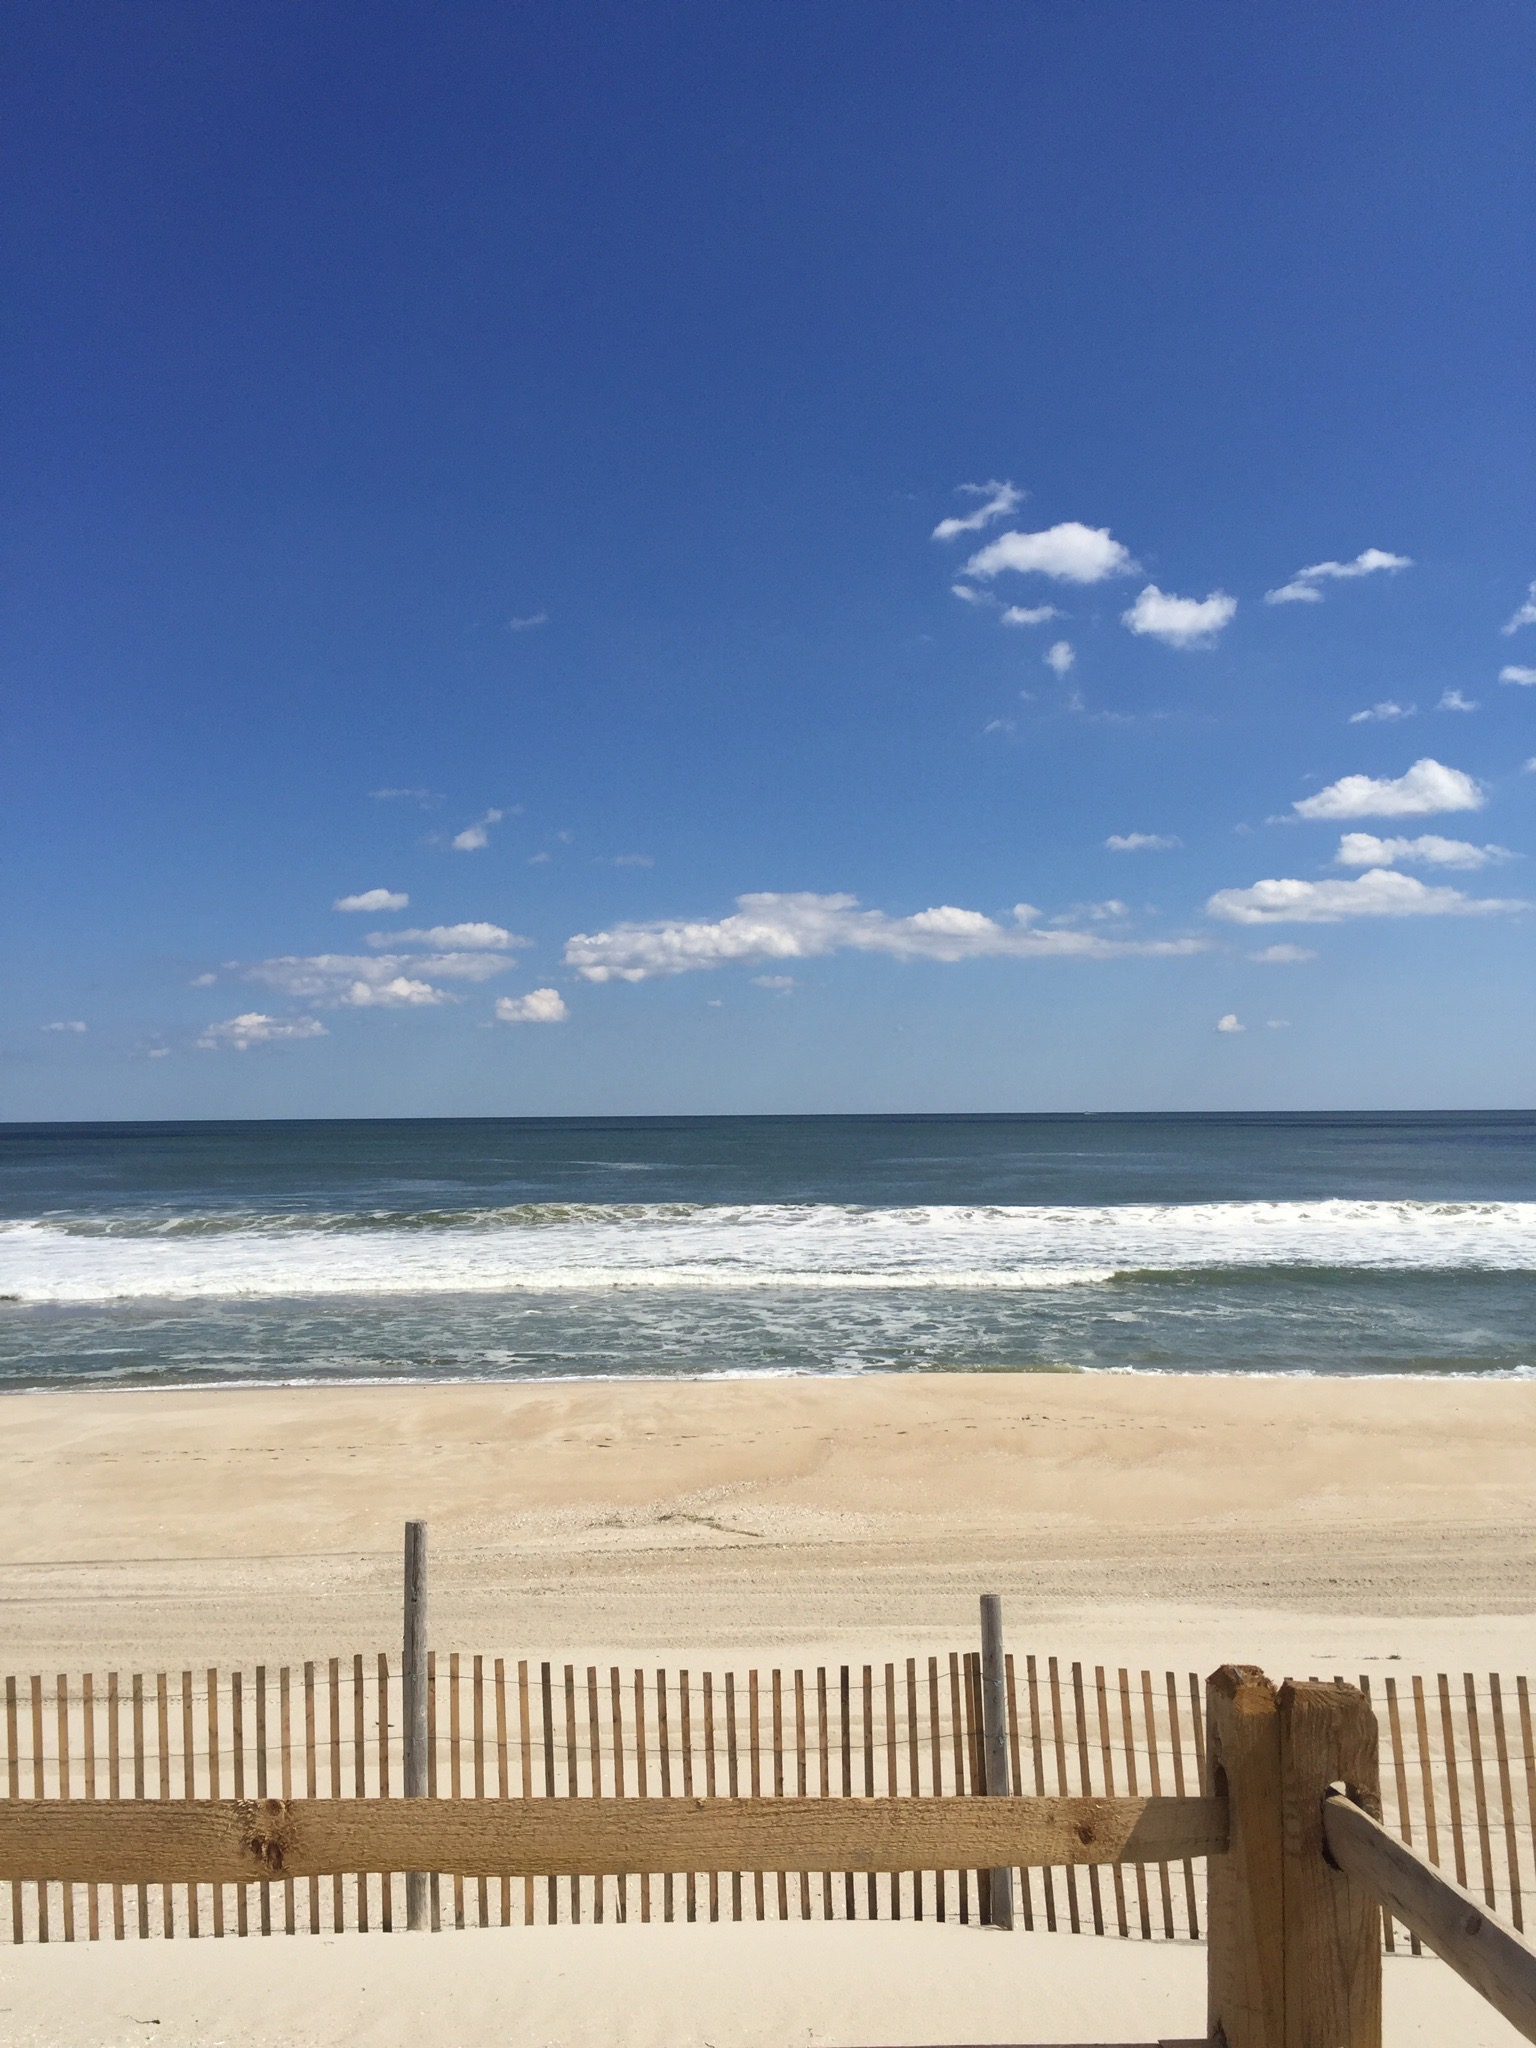 The Jersey Shore - I so love the ocean.